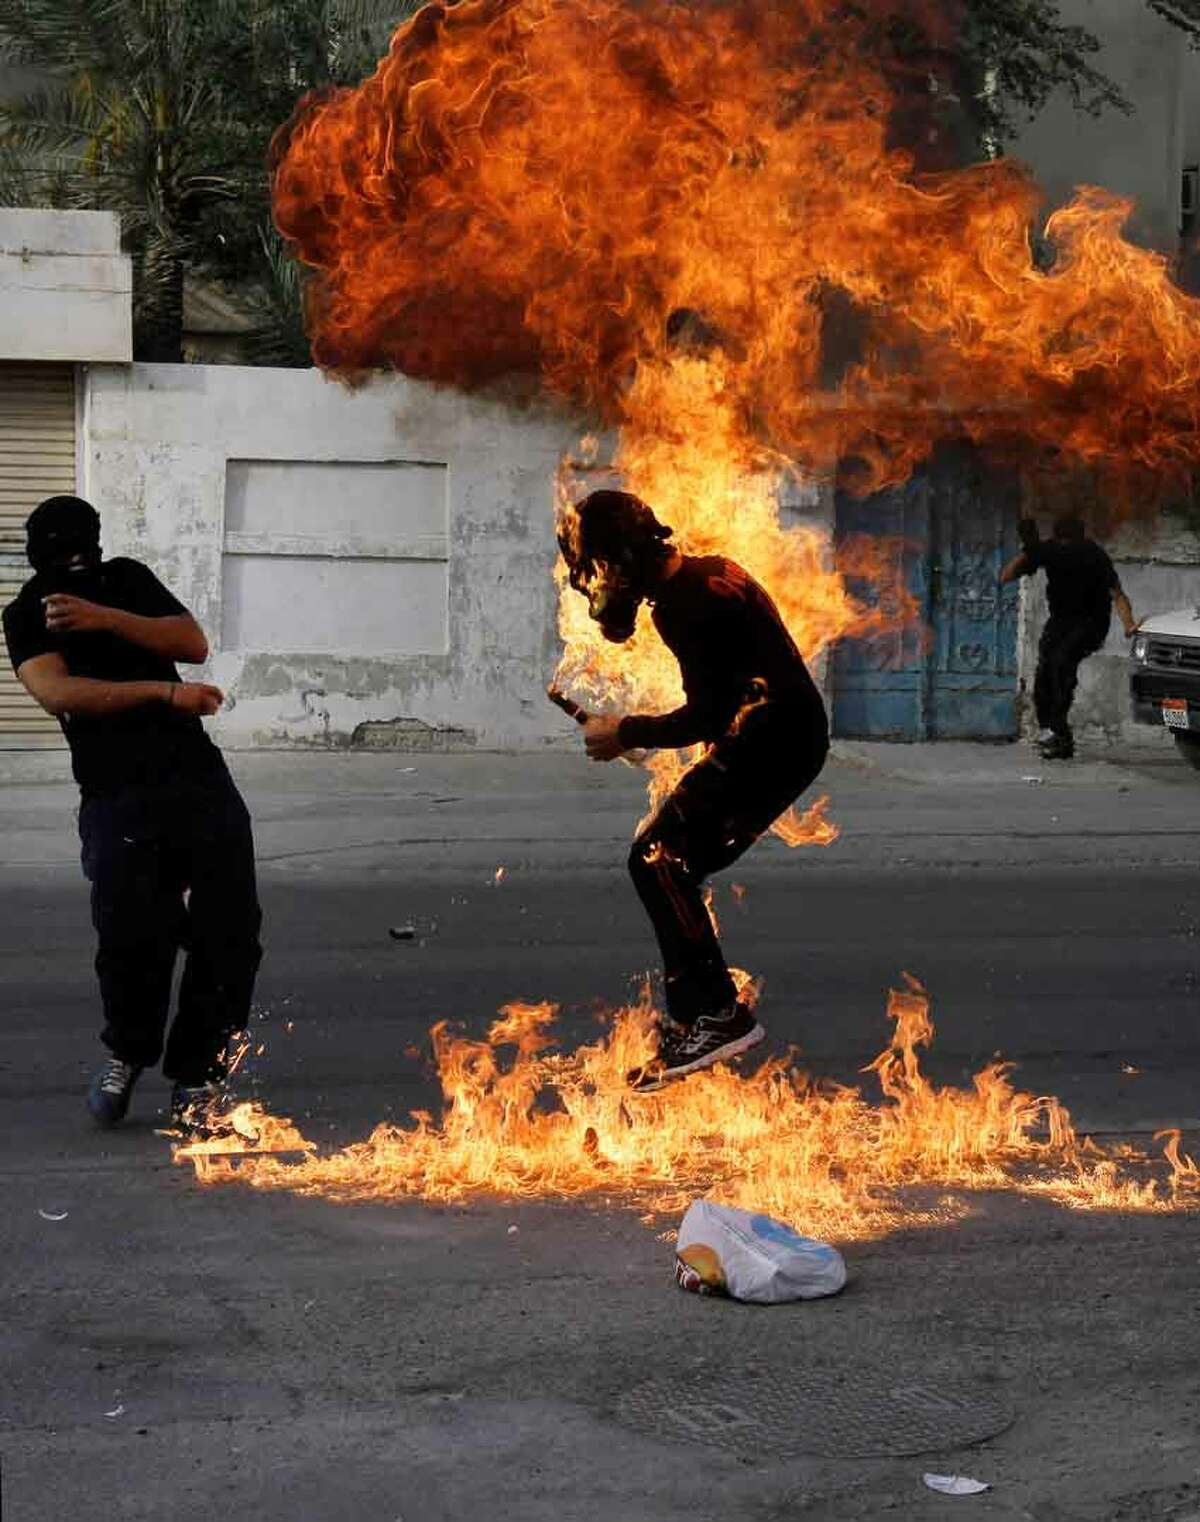 """A Bahraini anti-government protester is engulfed in flames when a shot fired by riot police hit the petrol bomb in his hand that he was preparing to throw during clashes in Sanabis, Bahrain, Thursday, March 14, 2013. Protests and clashes erupted in opposition areas nationwide Thursday with government opponents observing a """"Dignity Strike"""" _ blocking roads, closing shops, protesting and staying home from work and school _ called by the more radical February 14 youth group. (AP Photo/Hasan Jamali)"""